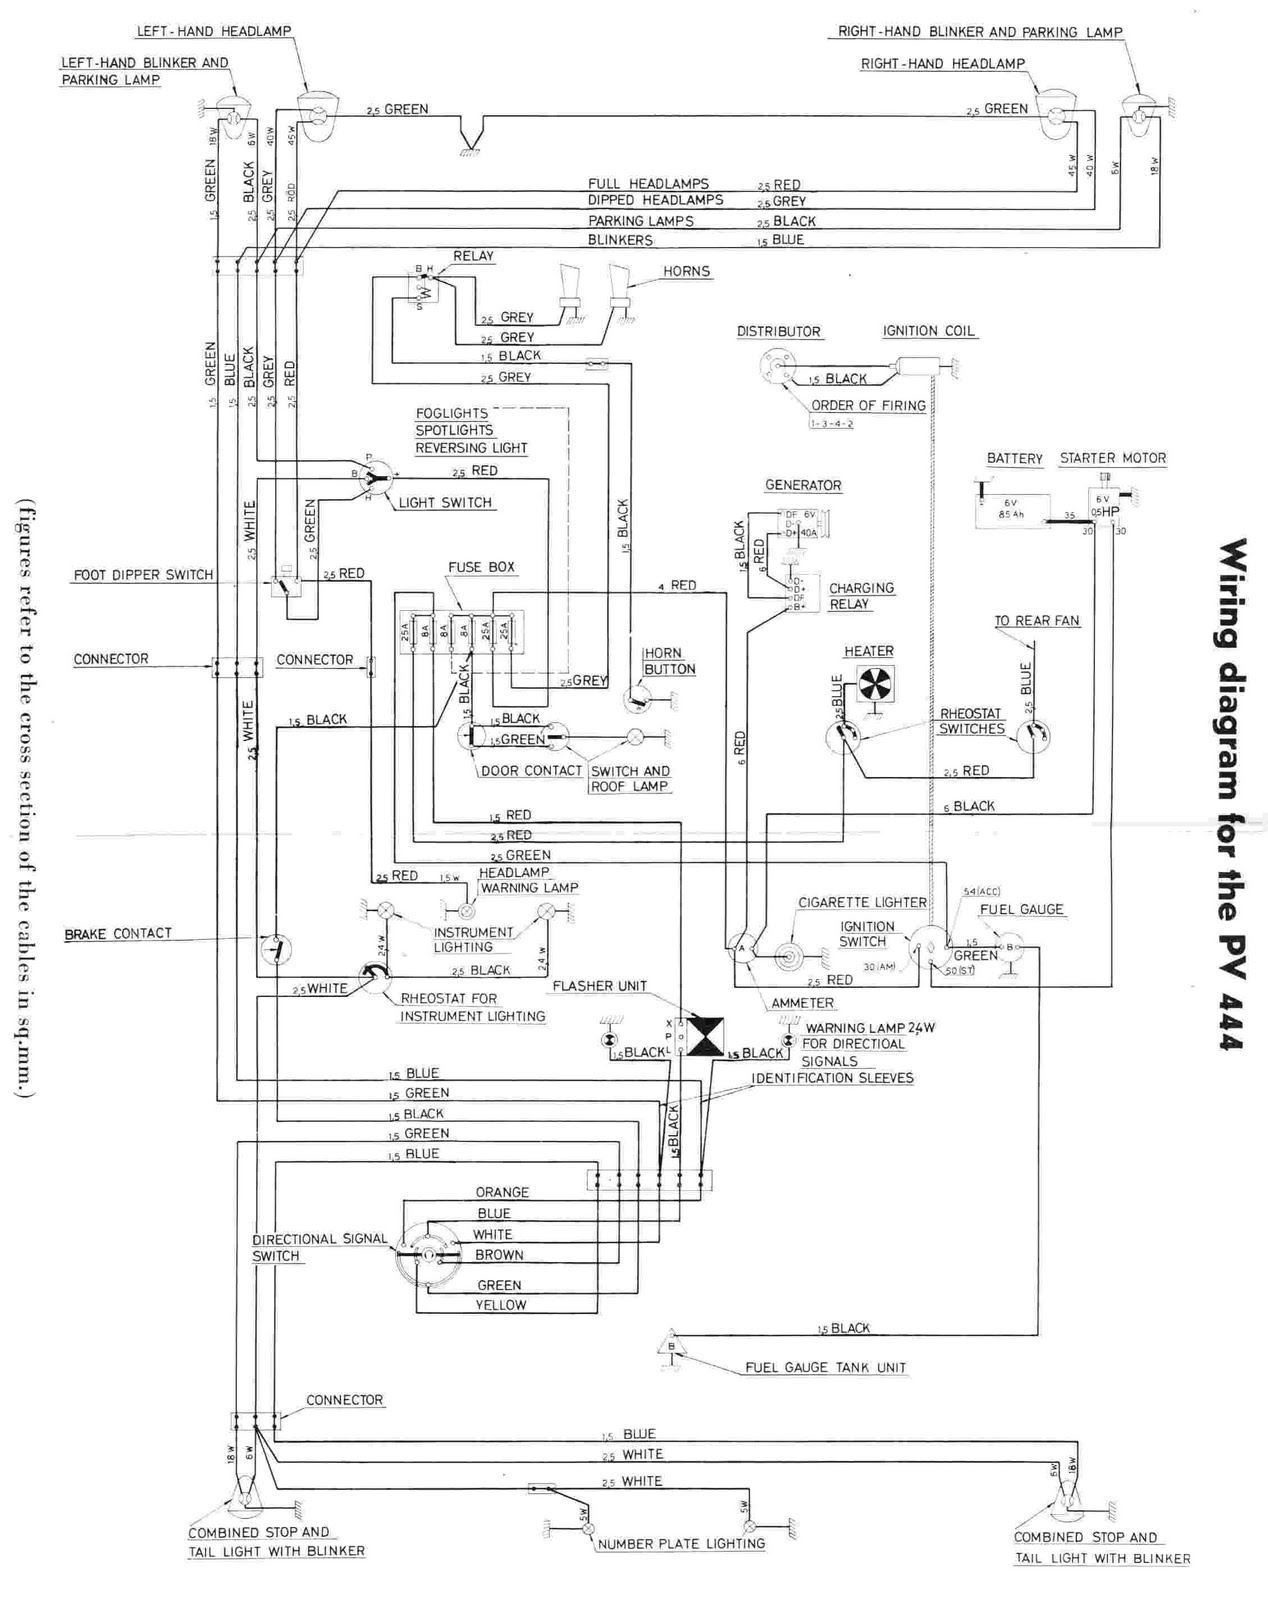 yamaha analog tachometer wiring diagram the wiring diagram yamaha outboard tachometer wiring diagram nilza wiring diagram